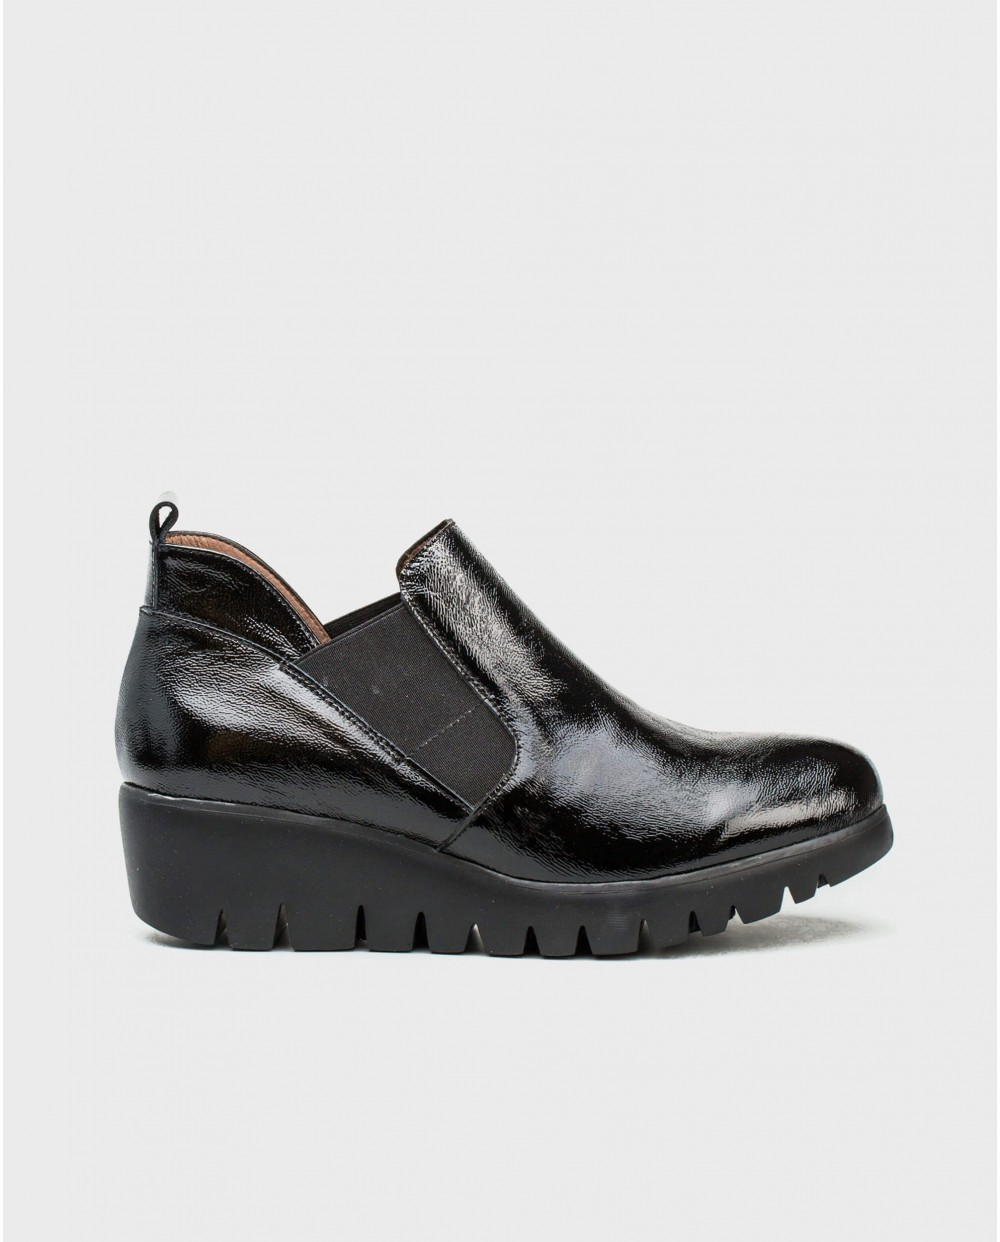 Wonders-Ankle Boots-Patent leather ankle boot